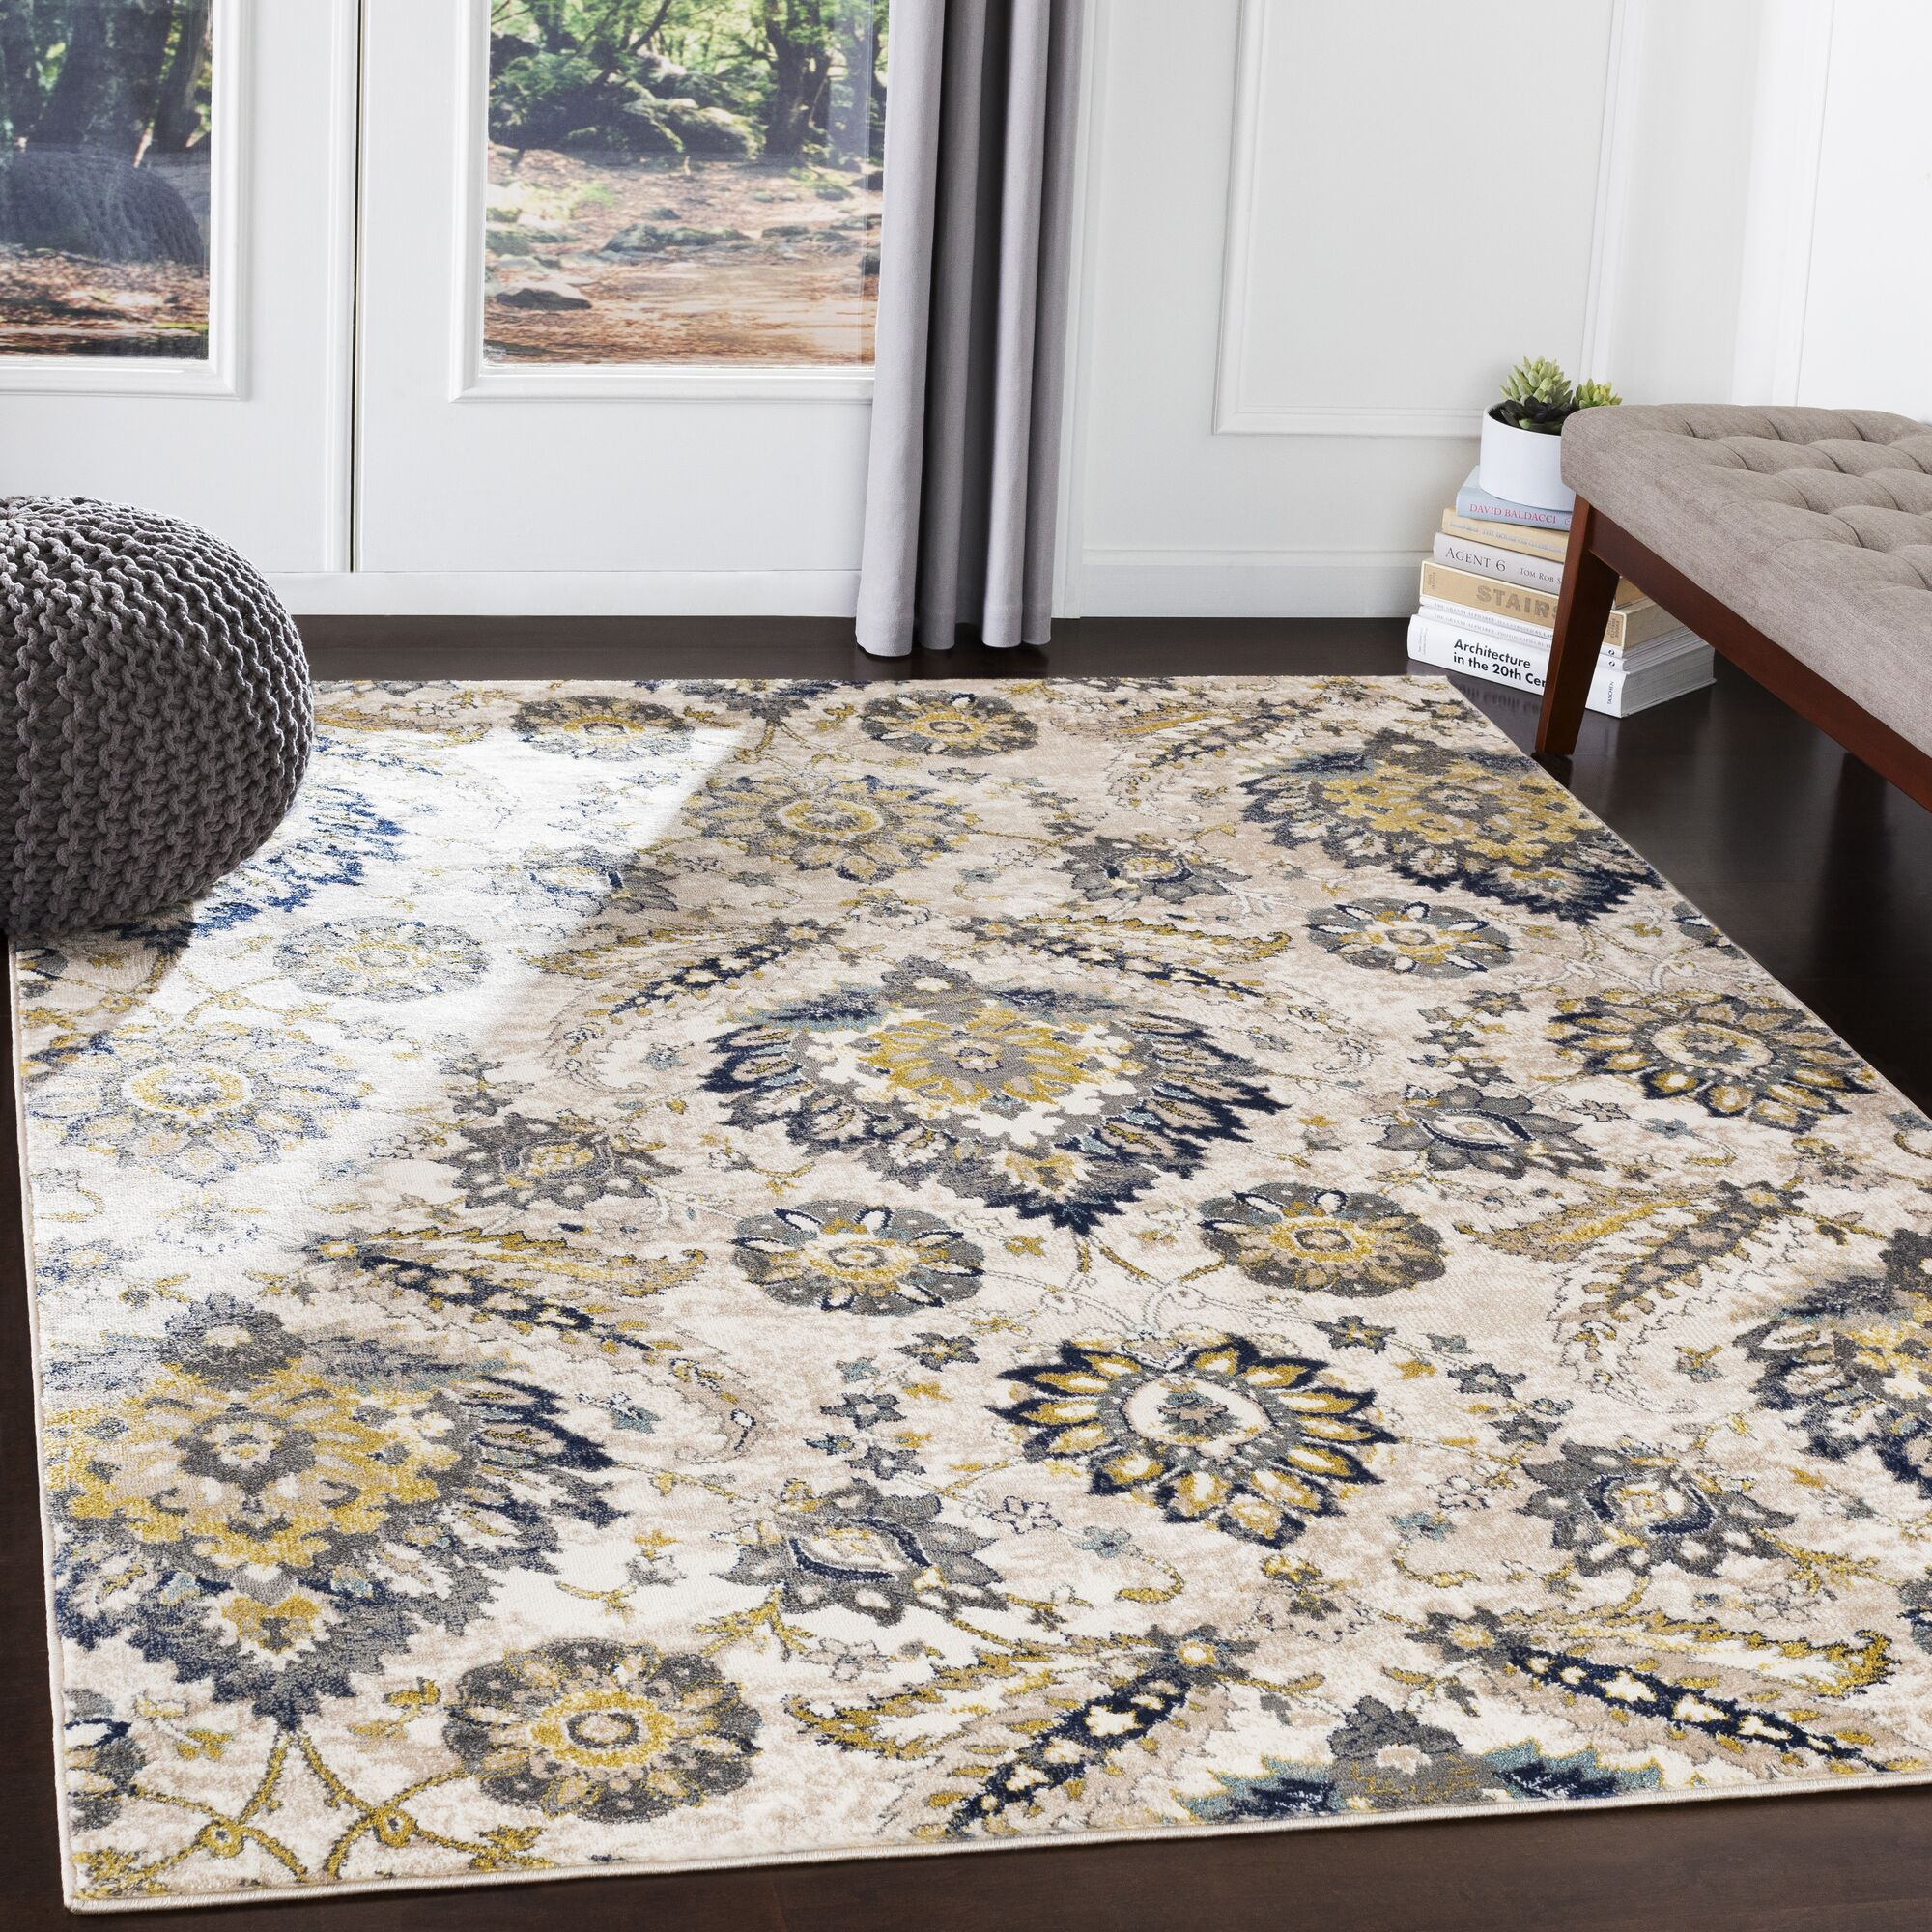 Macclesfield Floral Charcoal/Navy Area Rug Rug Size: Rectangle 5'3